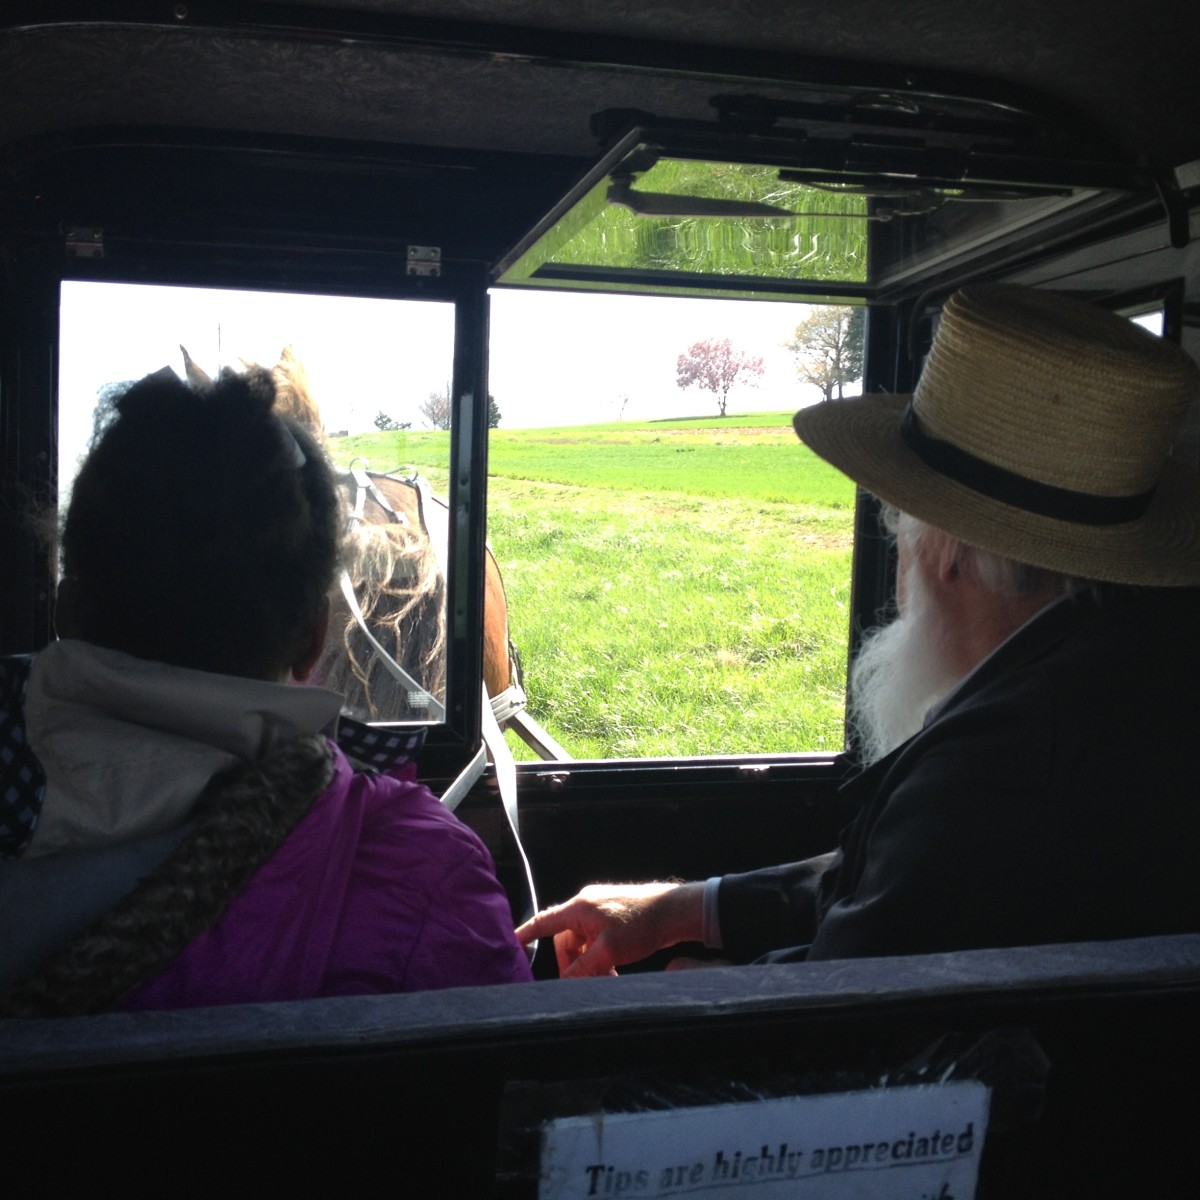 An Amish man giving a buggy tour of Amish country. It is against Amish beliefs to take pictures of their faces. Another great day trip from New York City